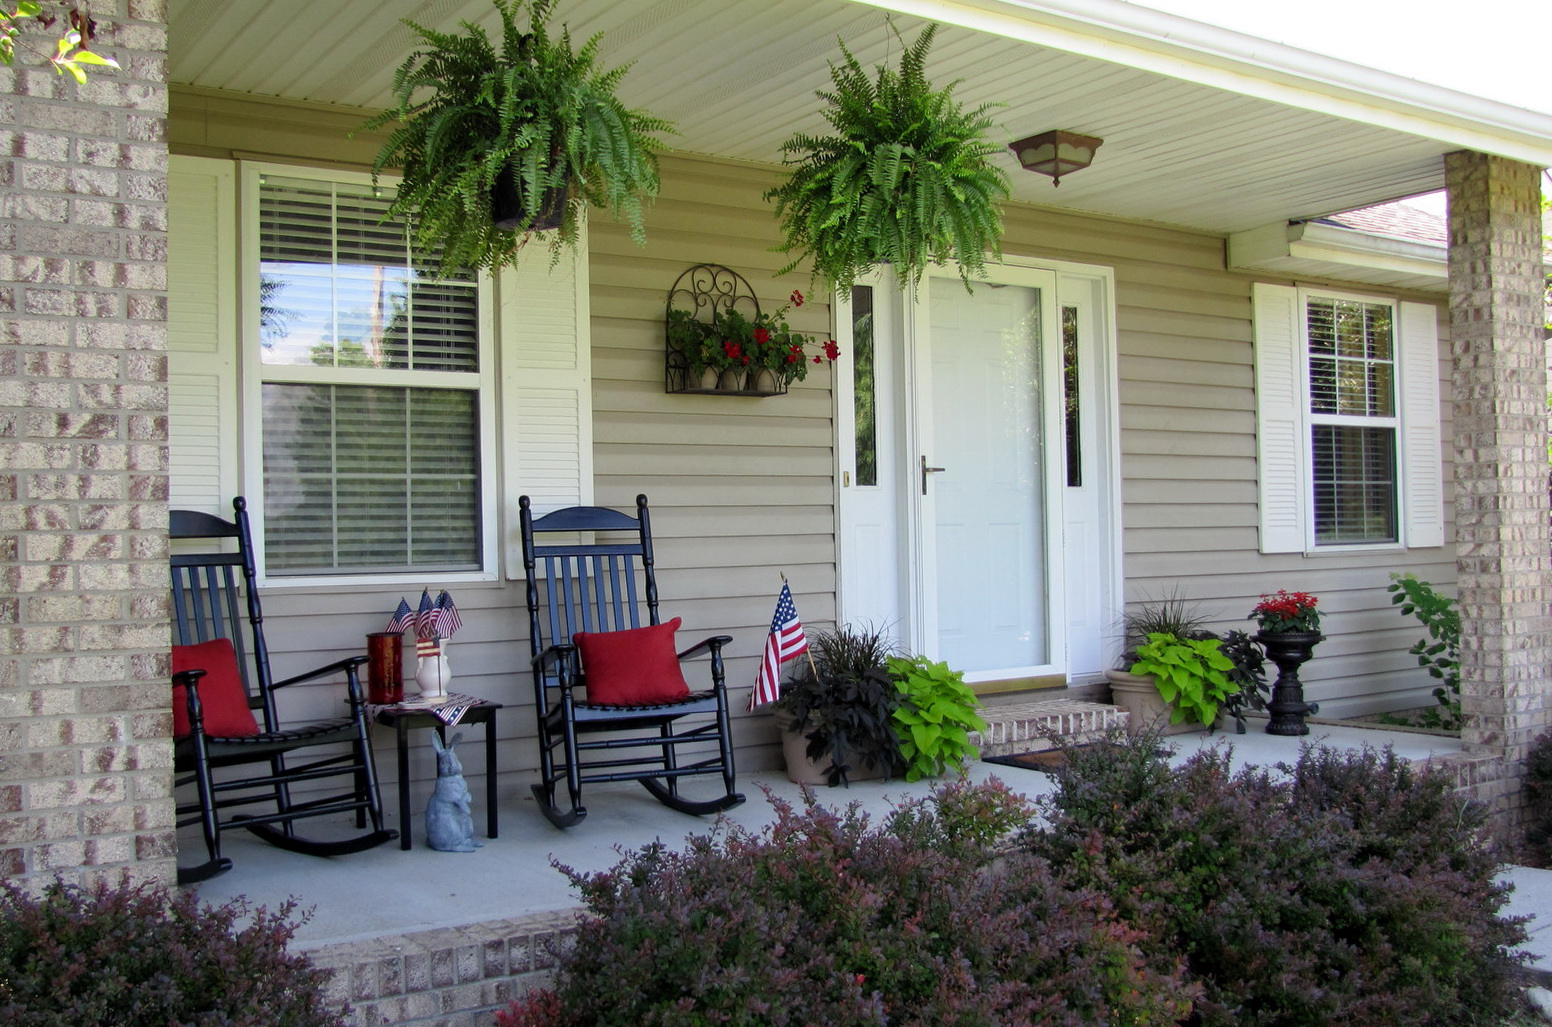 Country porch decorating ideas pictures home design ideas Front veranda decorating ideas